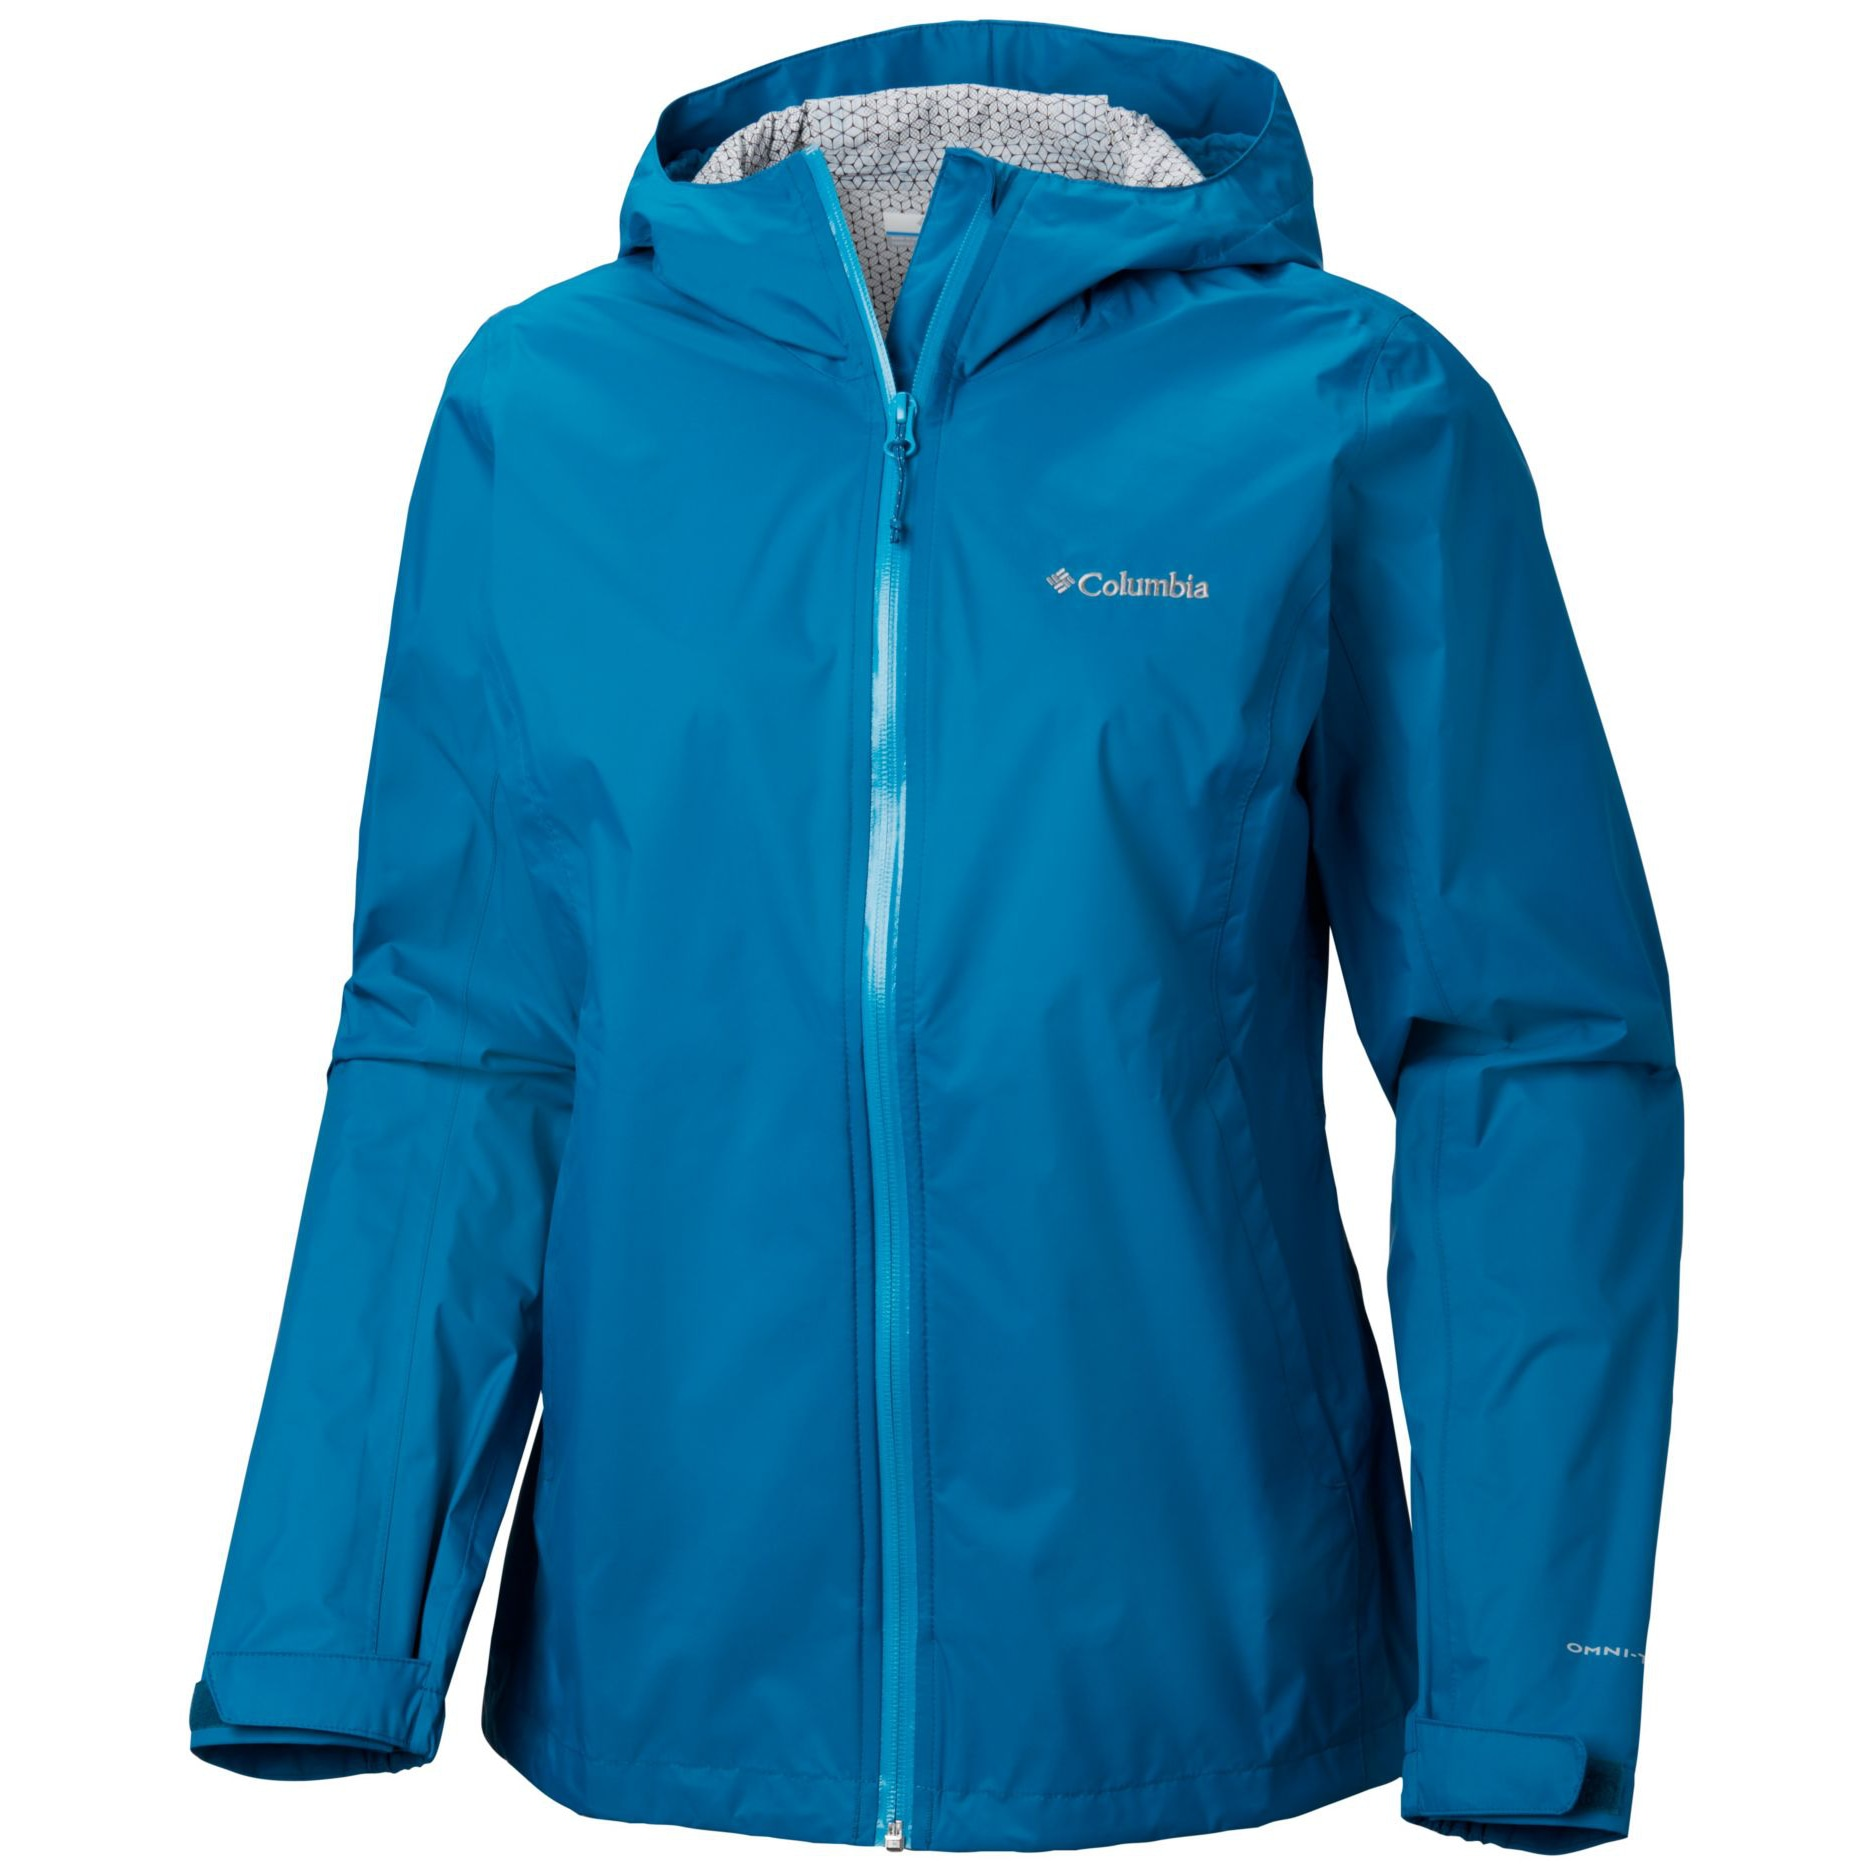 EvaPOURation Jacket - Women's